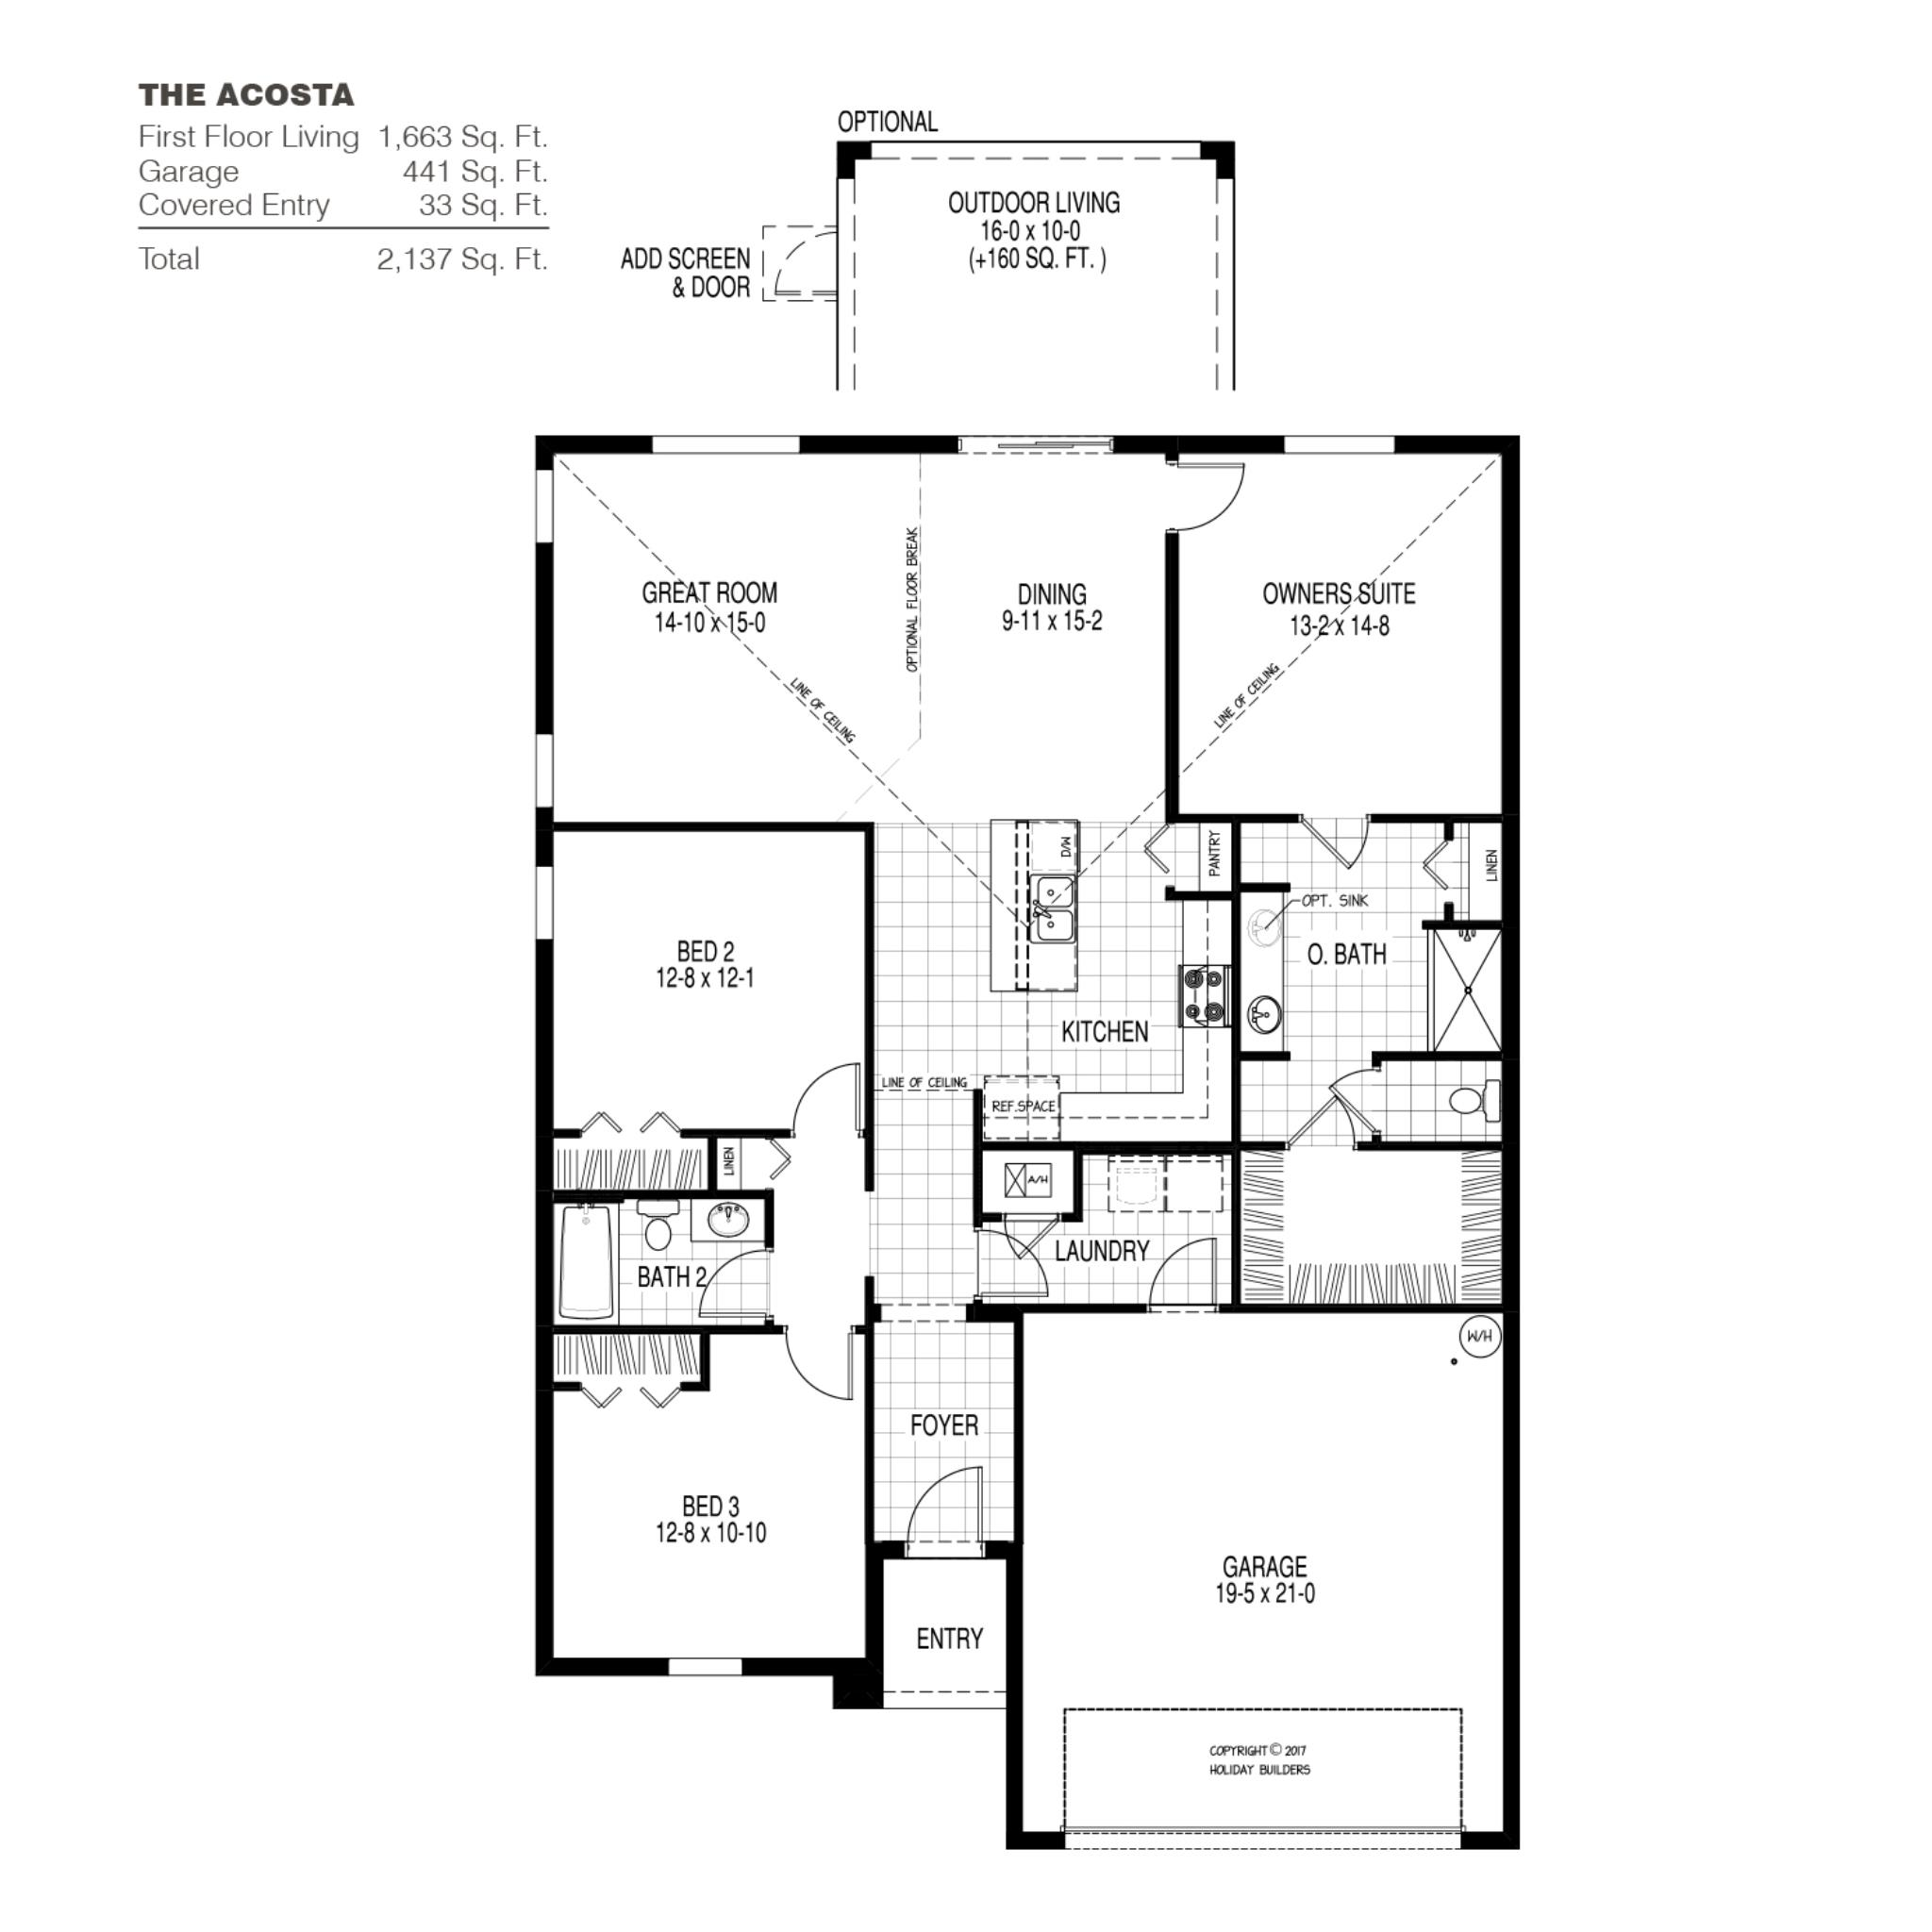 The Acosta A Floor Plan in Sebastian Highlands | Holiday ... on deck plans, ceiling plans, roof plans, houseboat plans, construction plans, garden plans, lighting plans, foundation plans, framing plans, basement plans, room plans, garage plans, apartment plans,